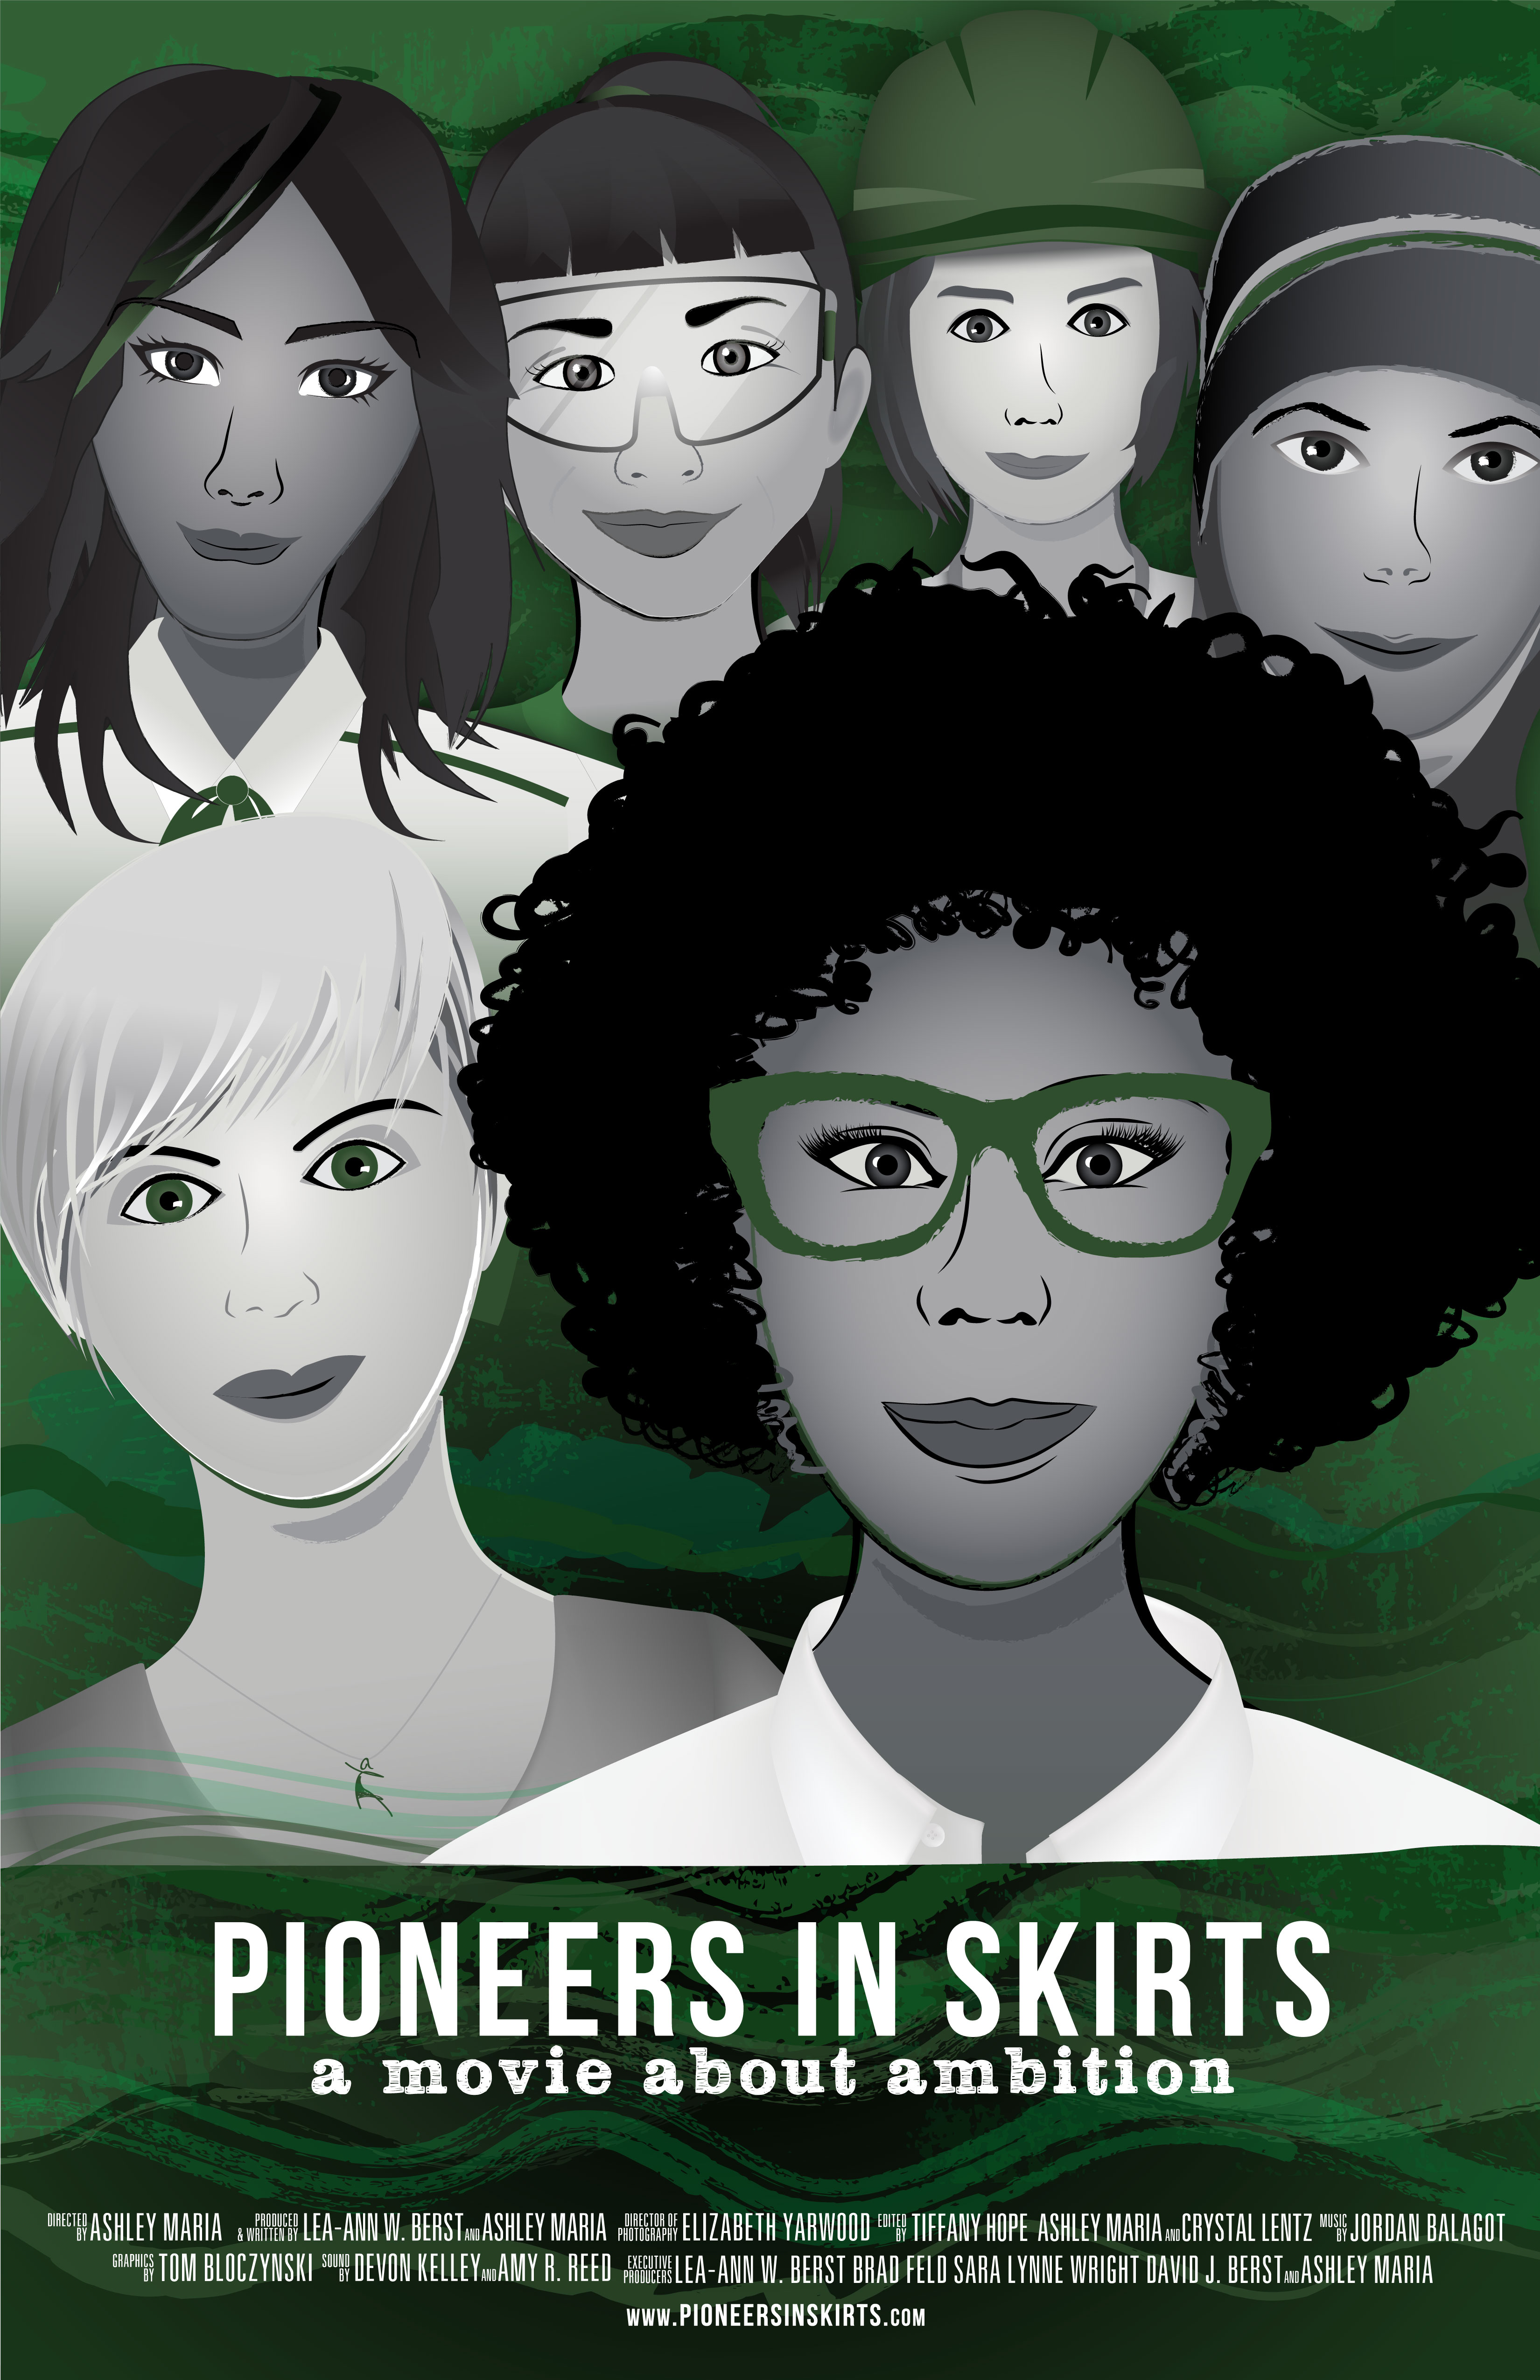 Pioneers in Skirts Movie Poster with Credits